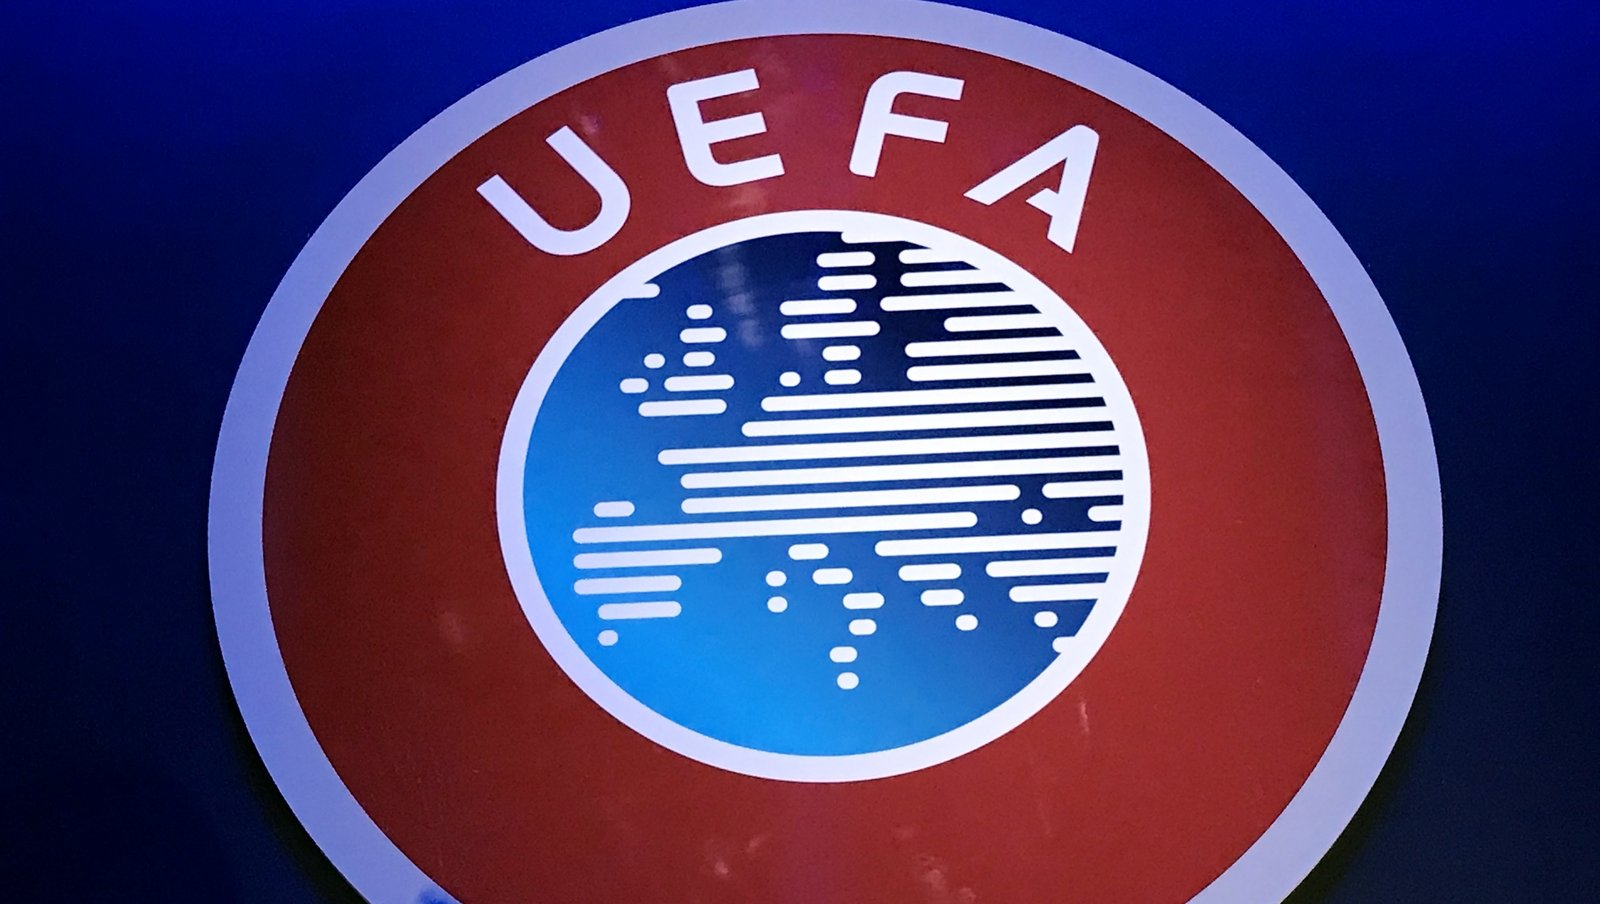 UEFA secures court expose to dam illegal streaming